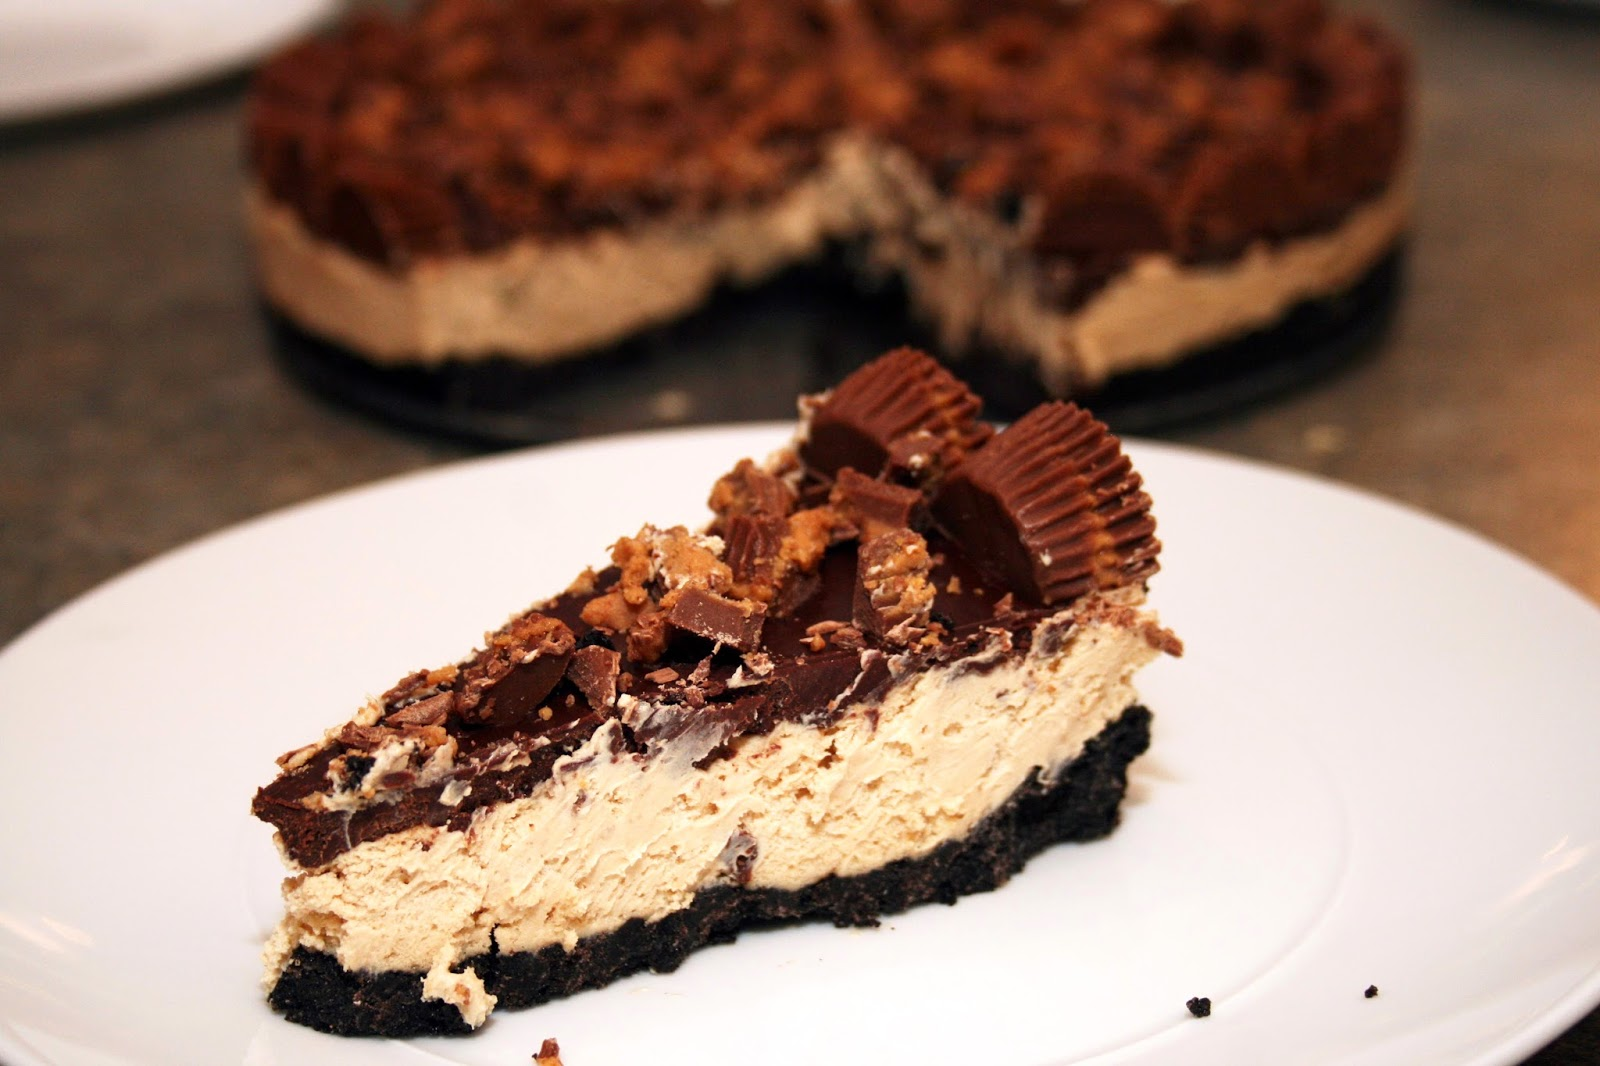 Lazy Gluten Free: Gluten-Free Chocolate Peanut Butter Pie